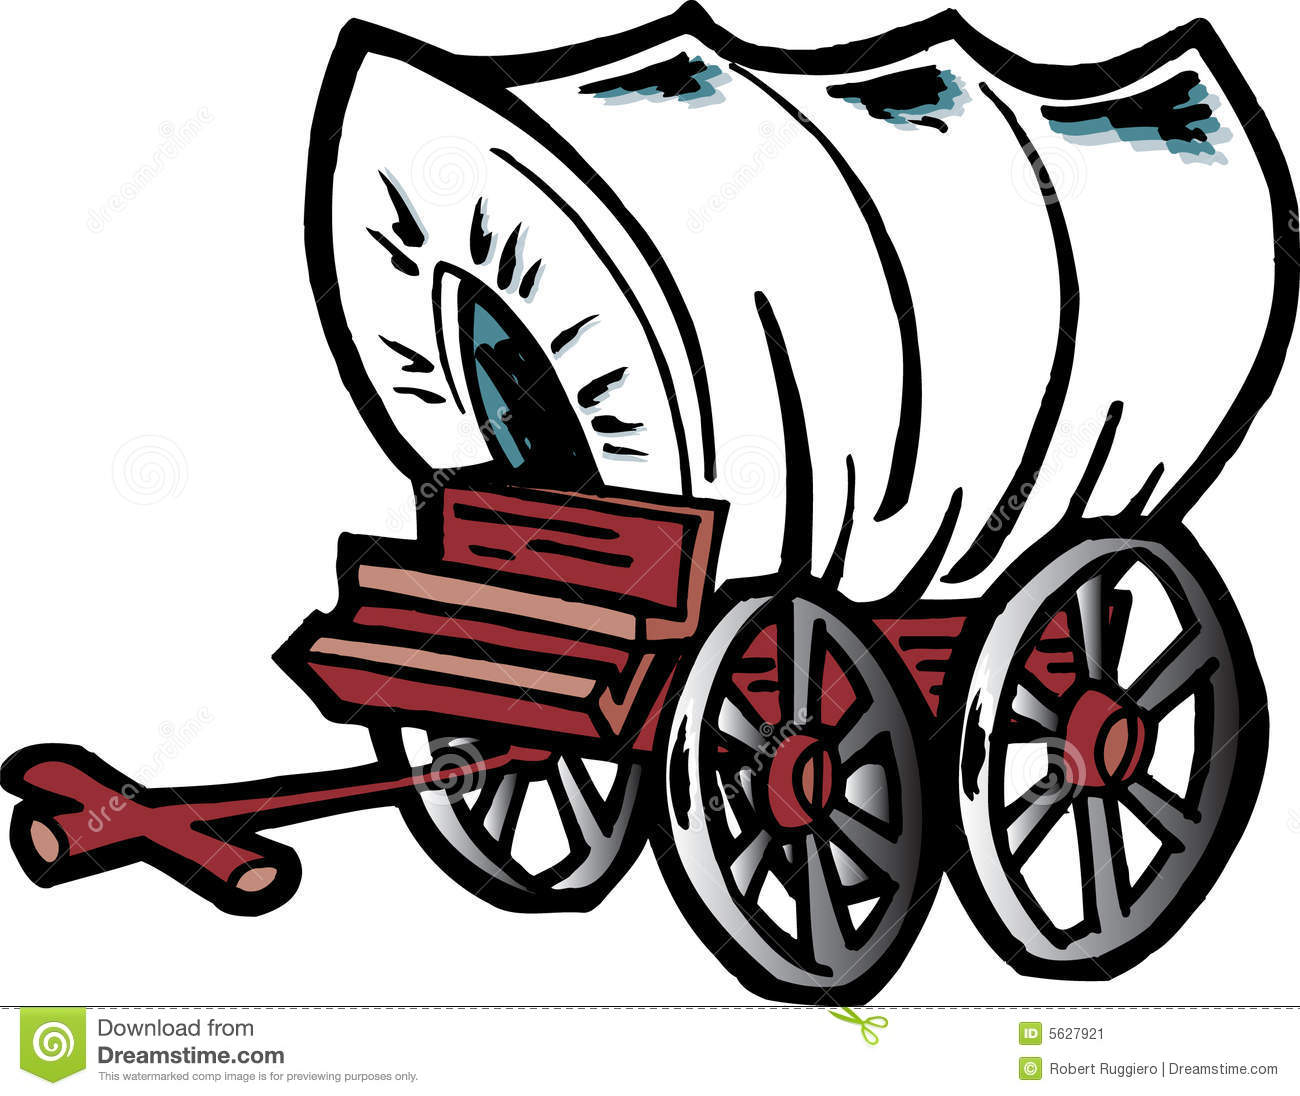 conestoga wagon drawing at getdrawings com free for personal use rh getdrawings com covered wagon wheel clip art